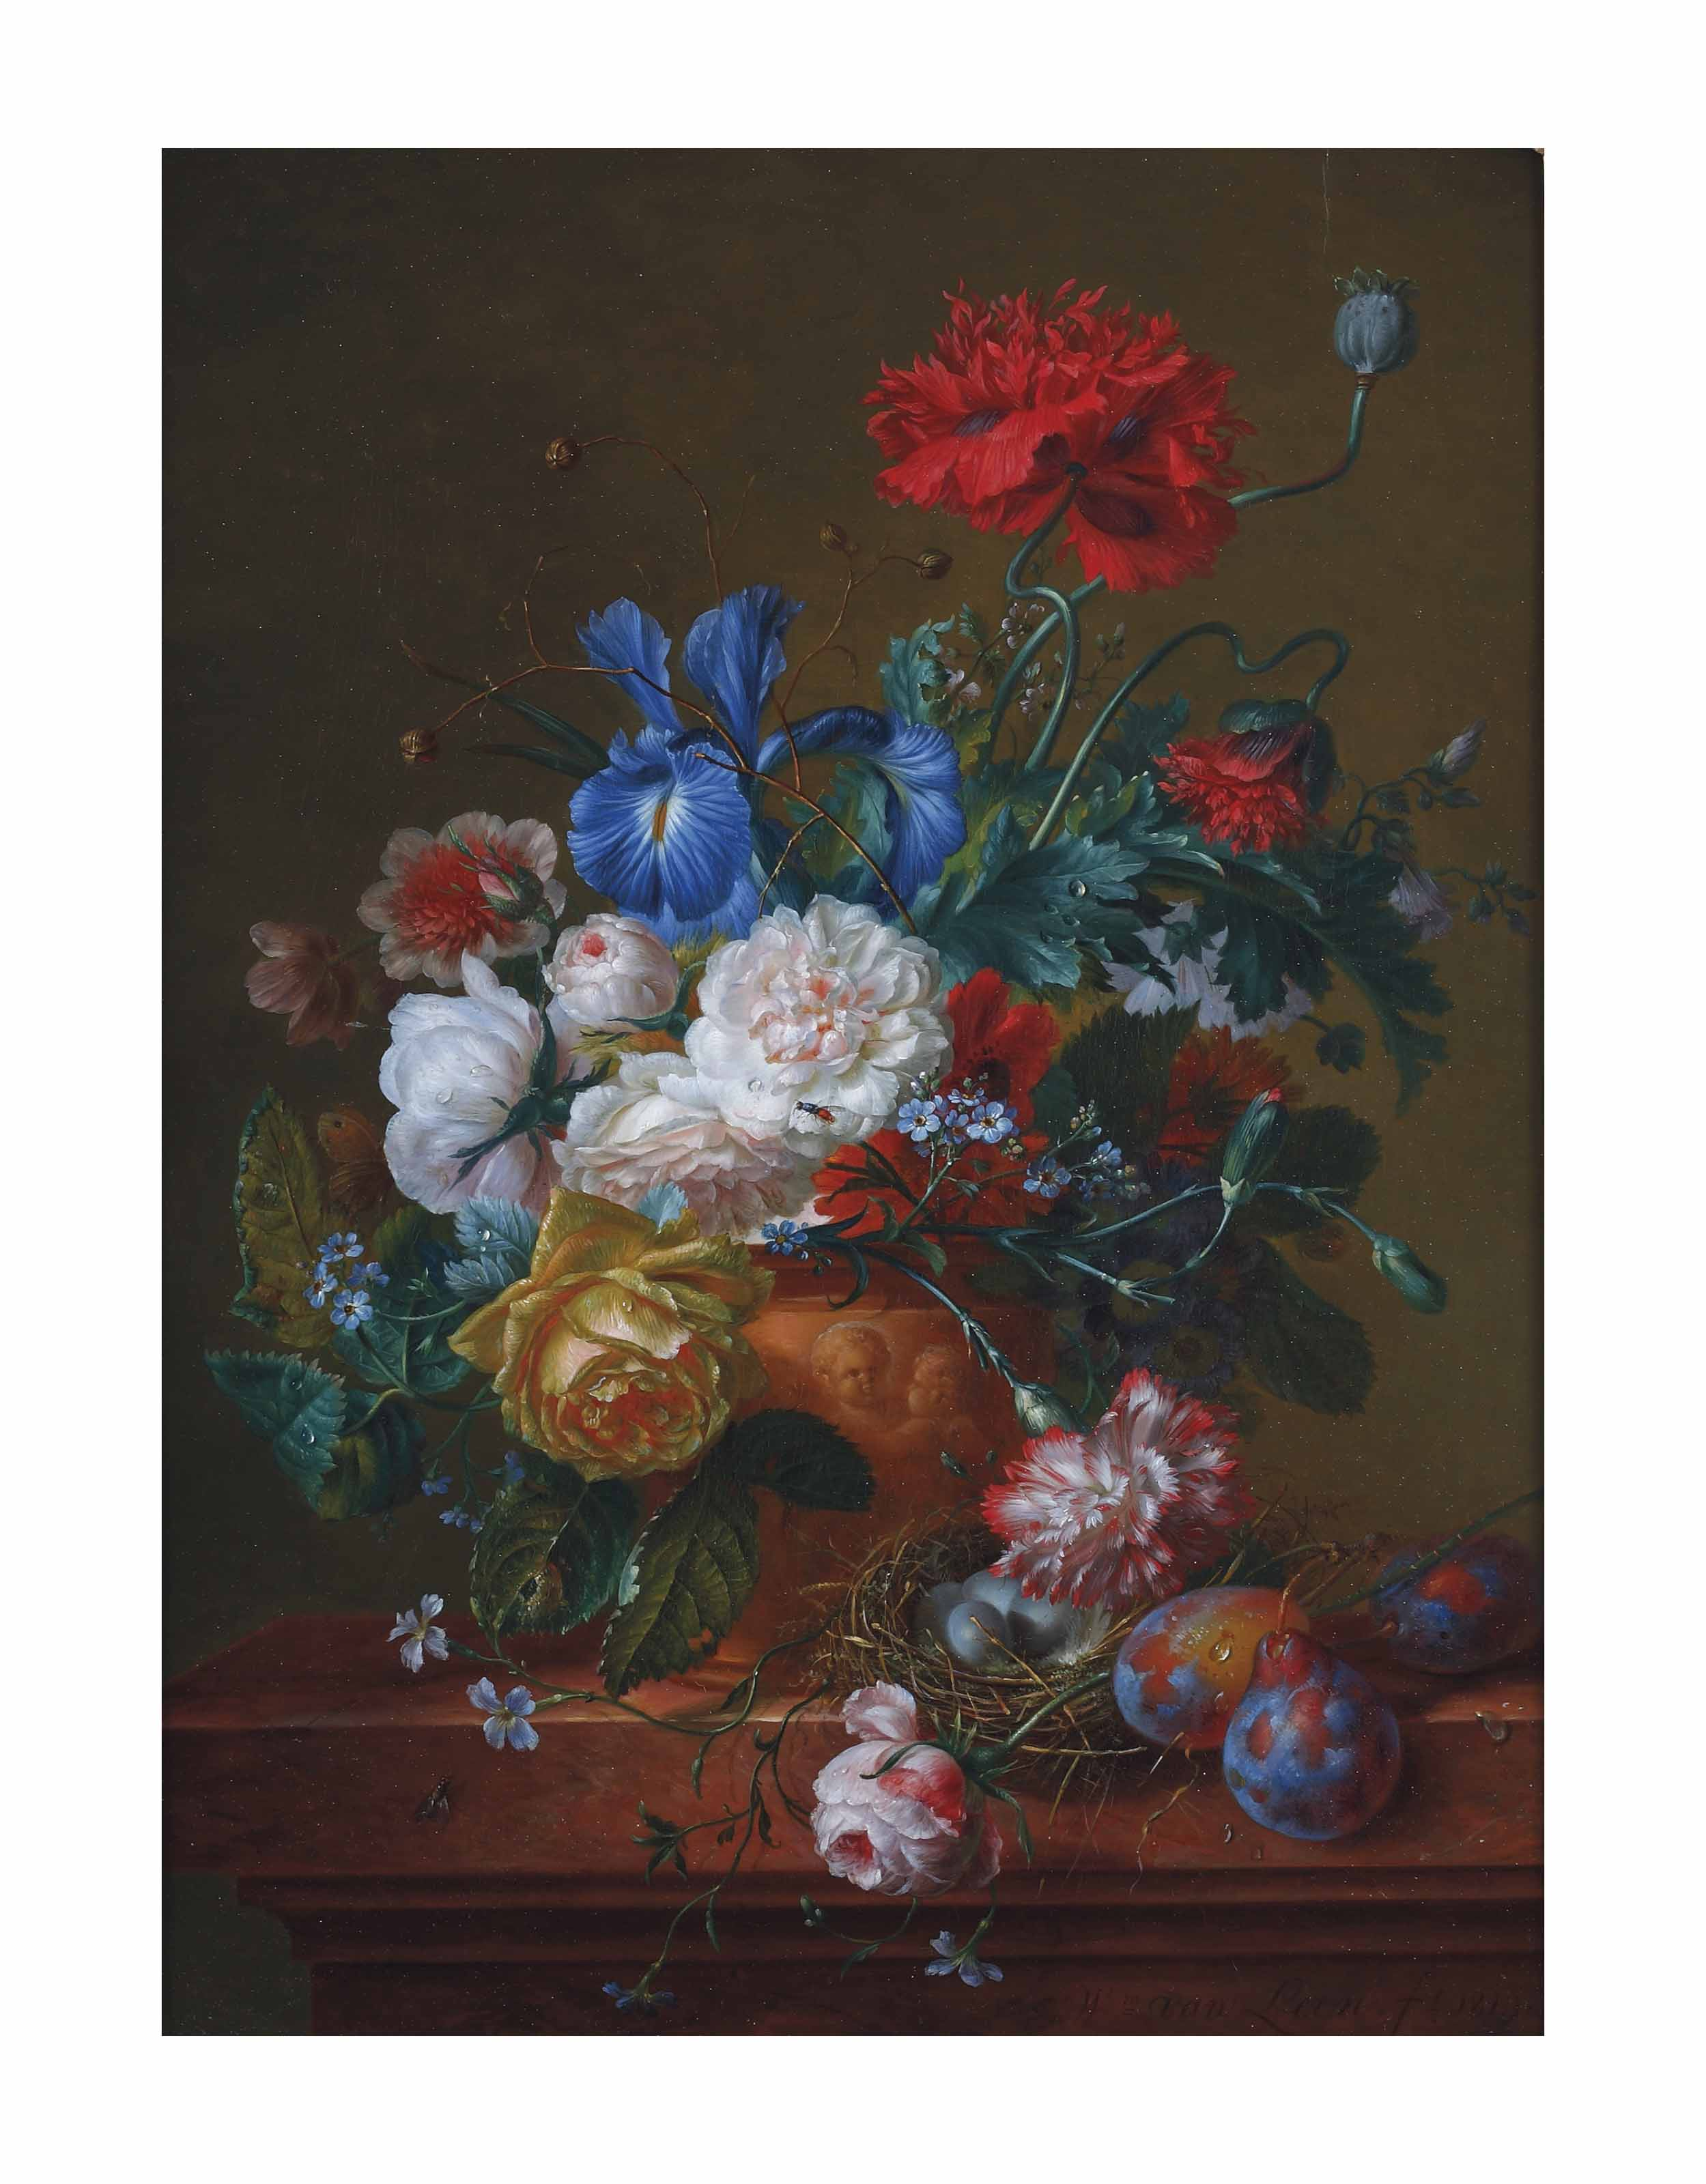 A bouquet of roses, poppies, forget-me-nots, irises and carnations in an earthenwear vase with prunes and a bird's nest on a ledge